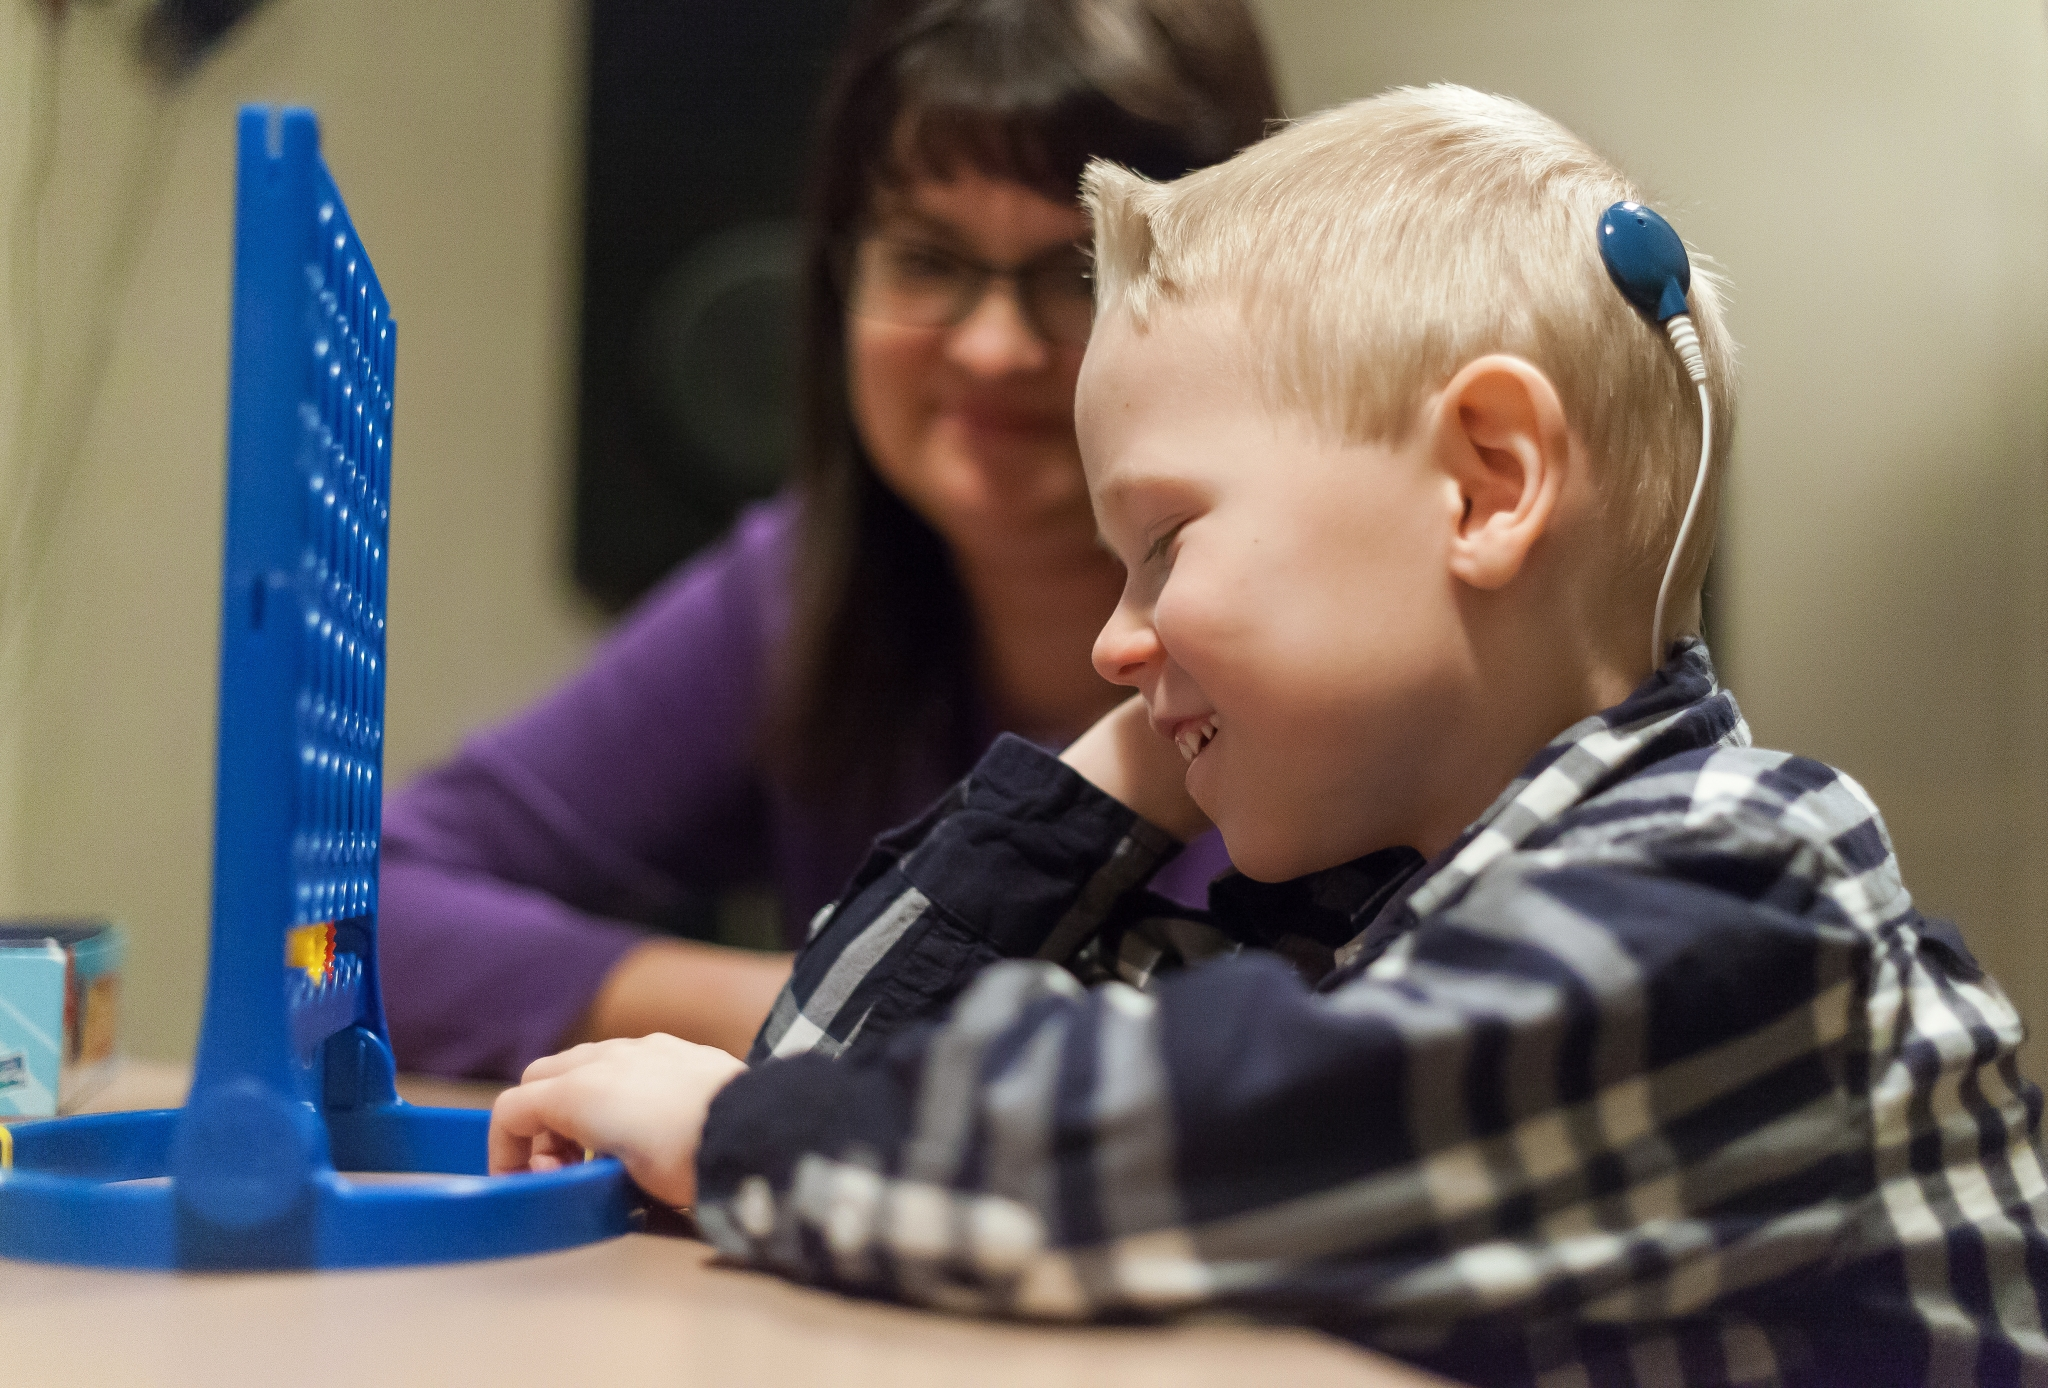 Child audiology patient playing connect four with Glenrose staff.